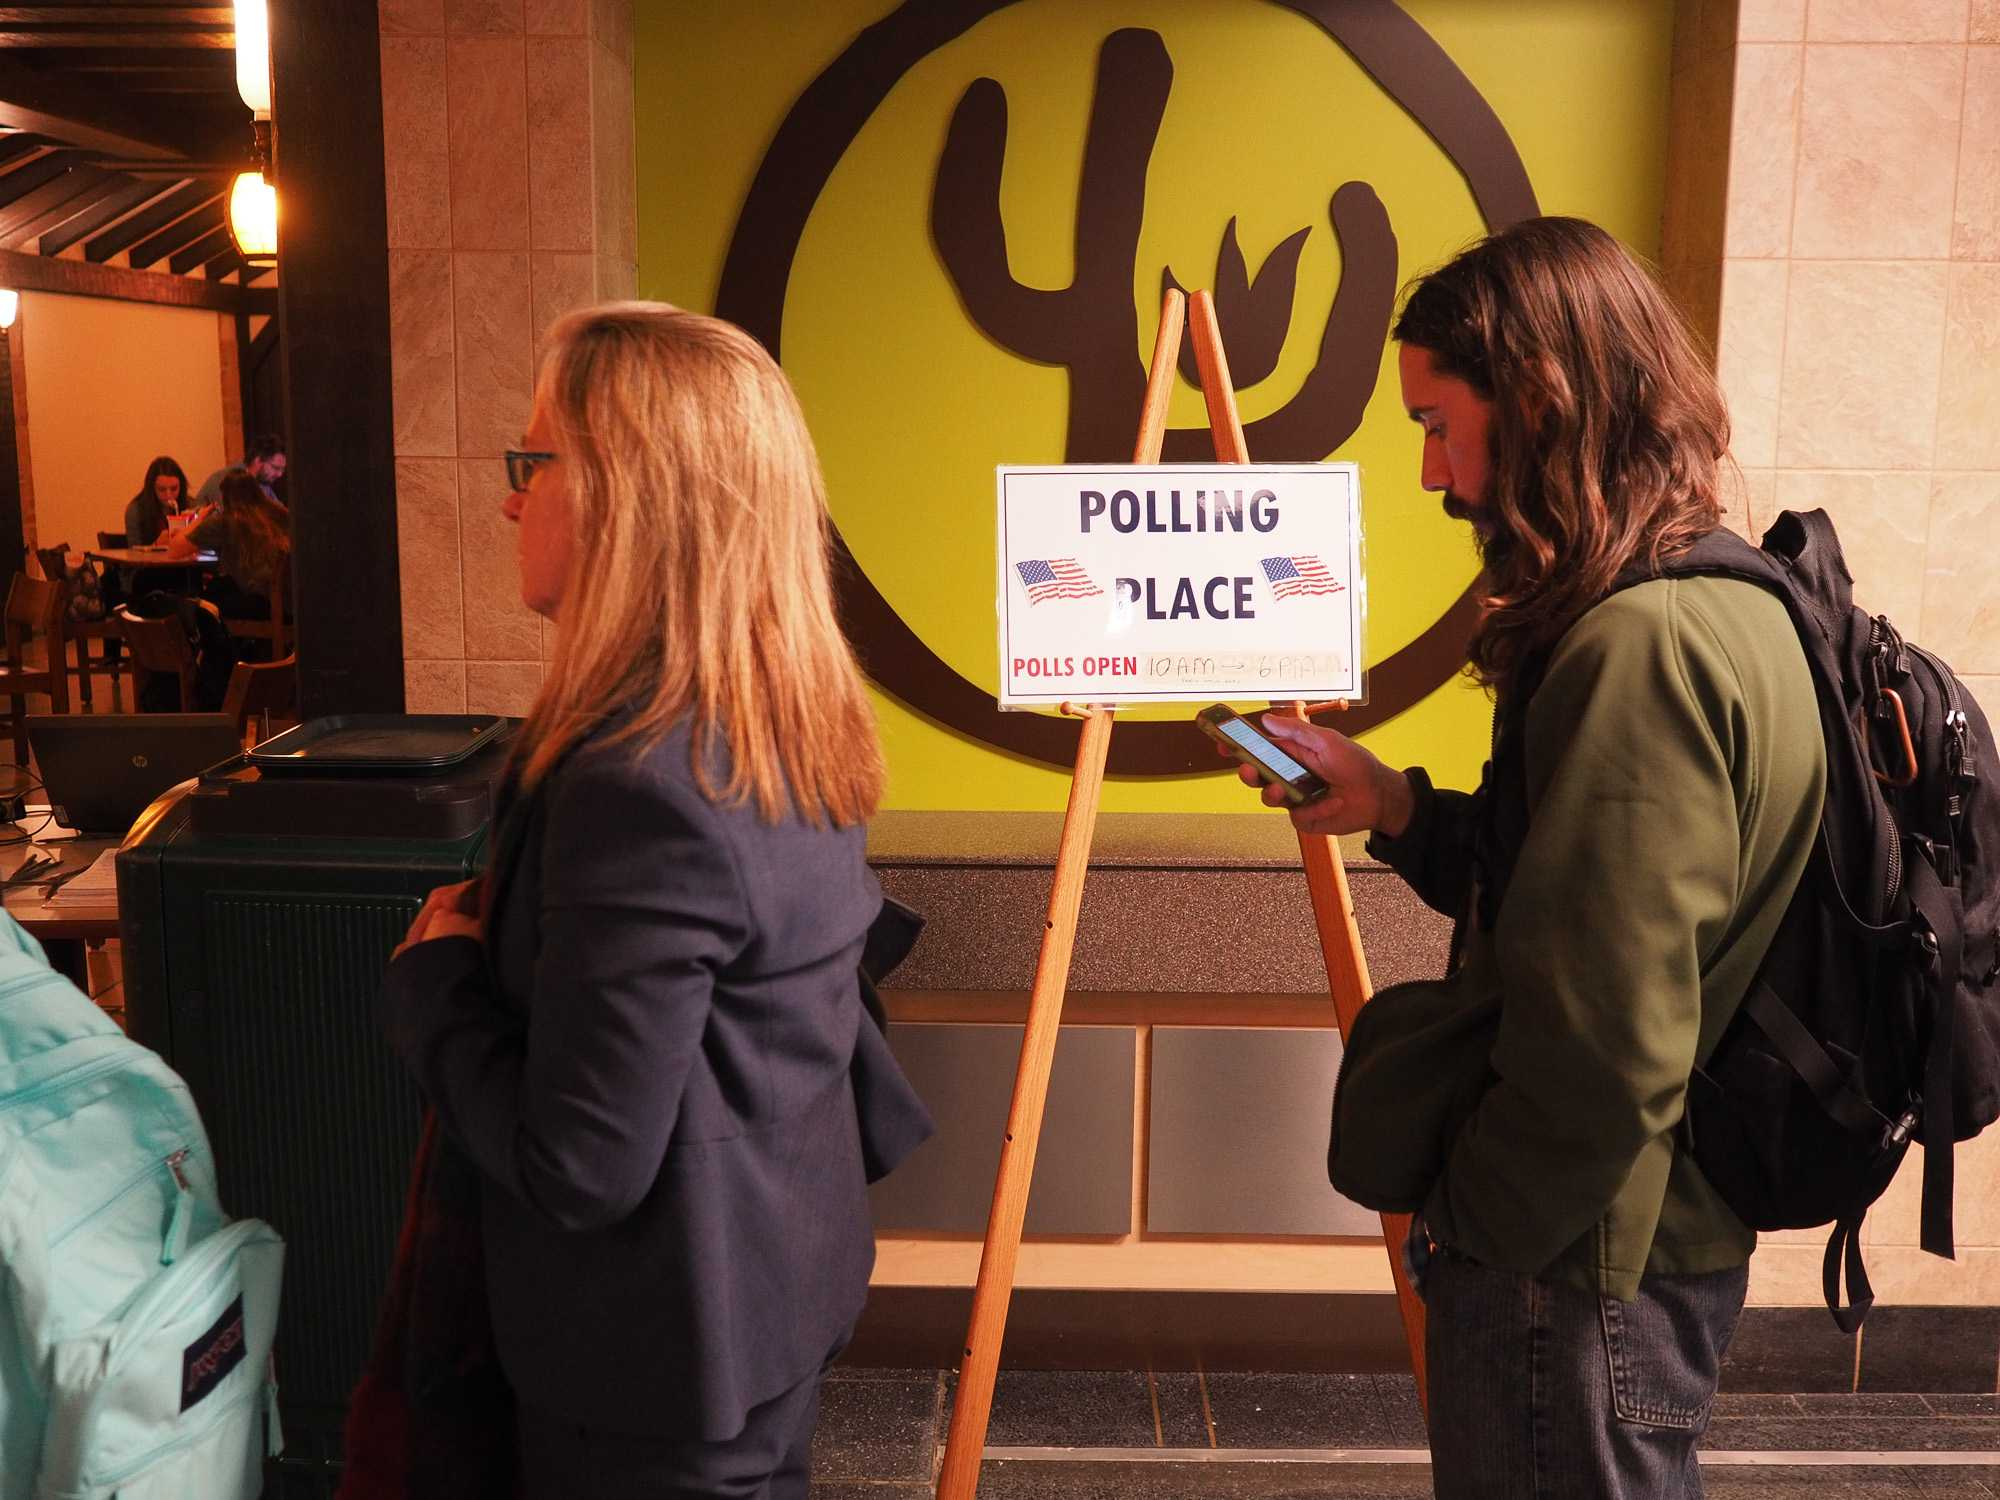 Students line up at the polls in the Union basement for early voting.